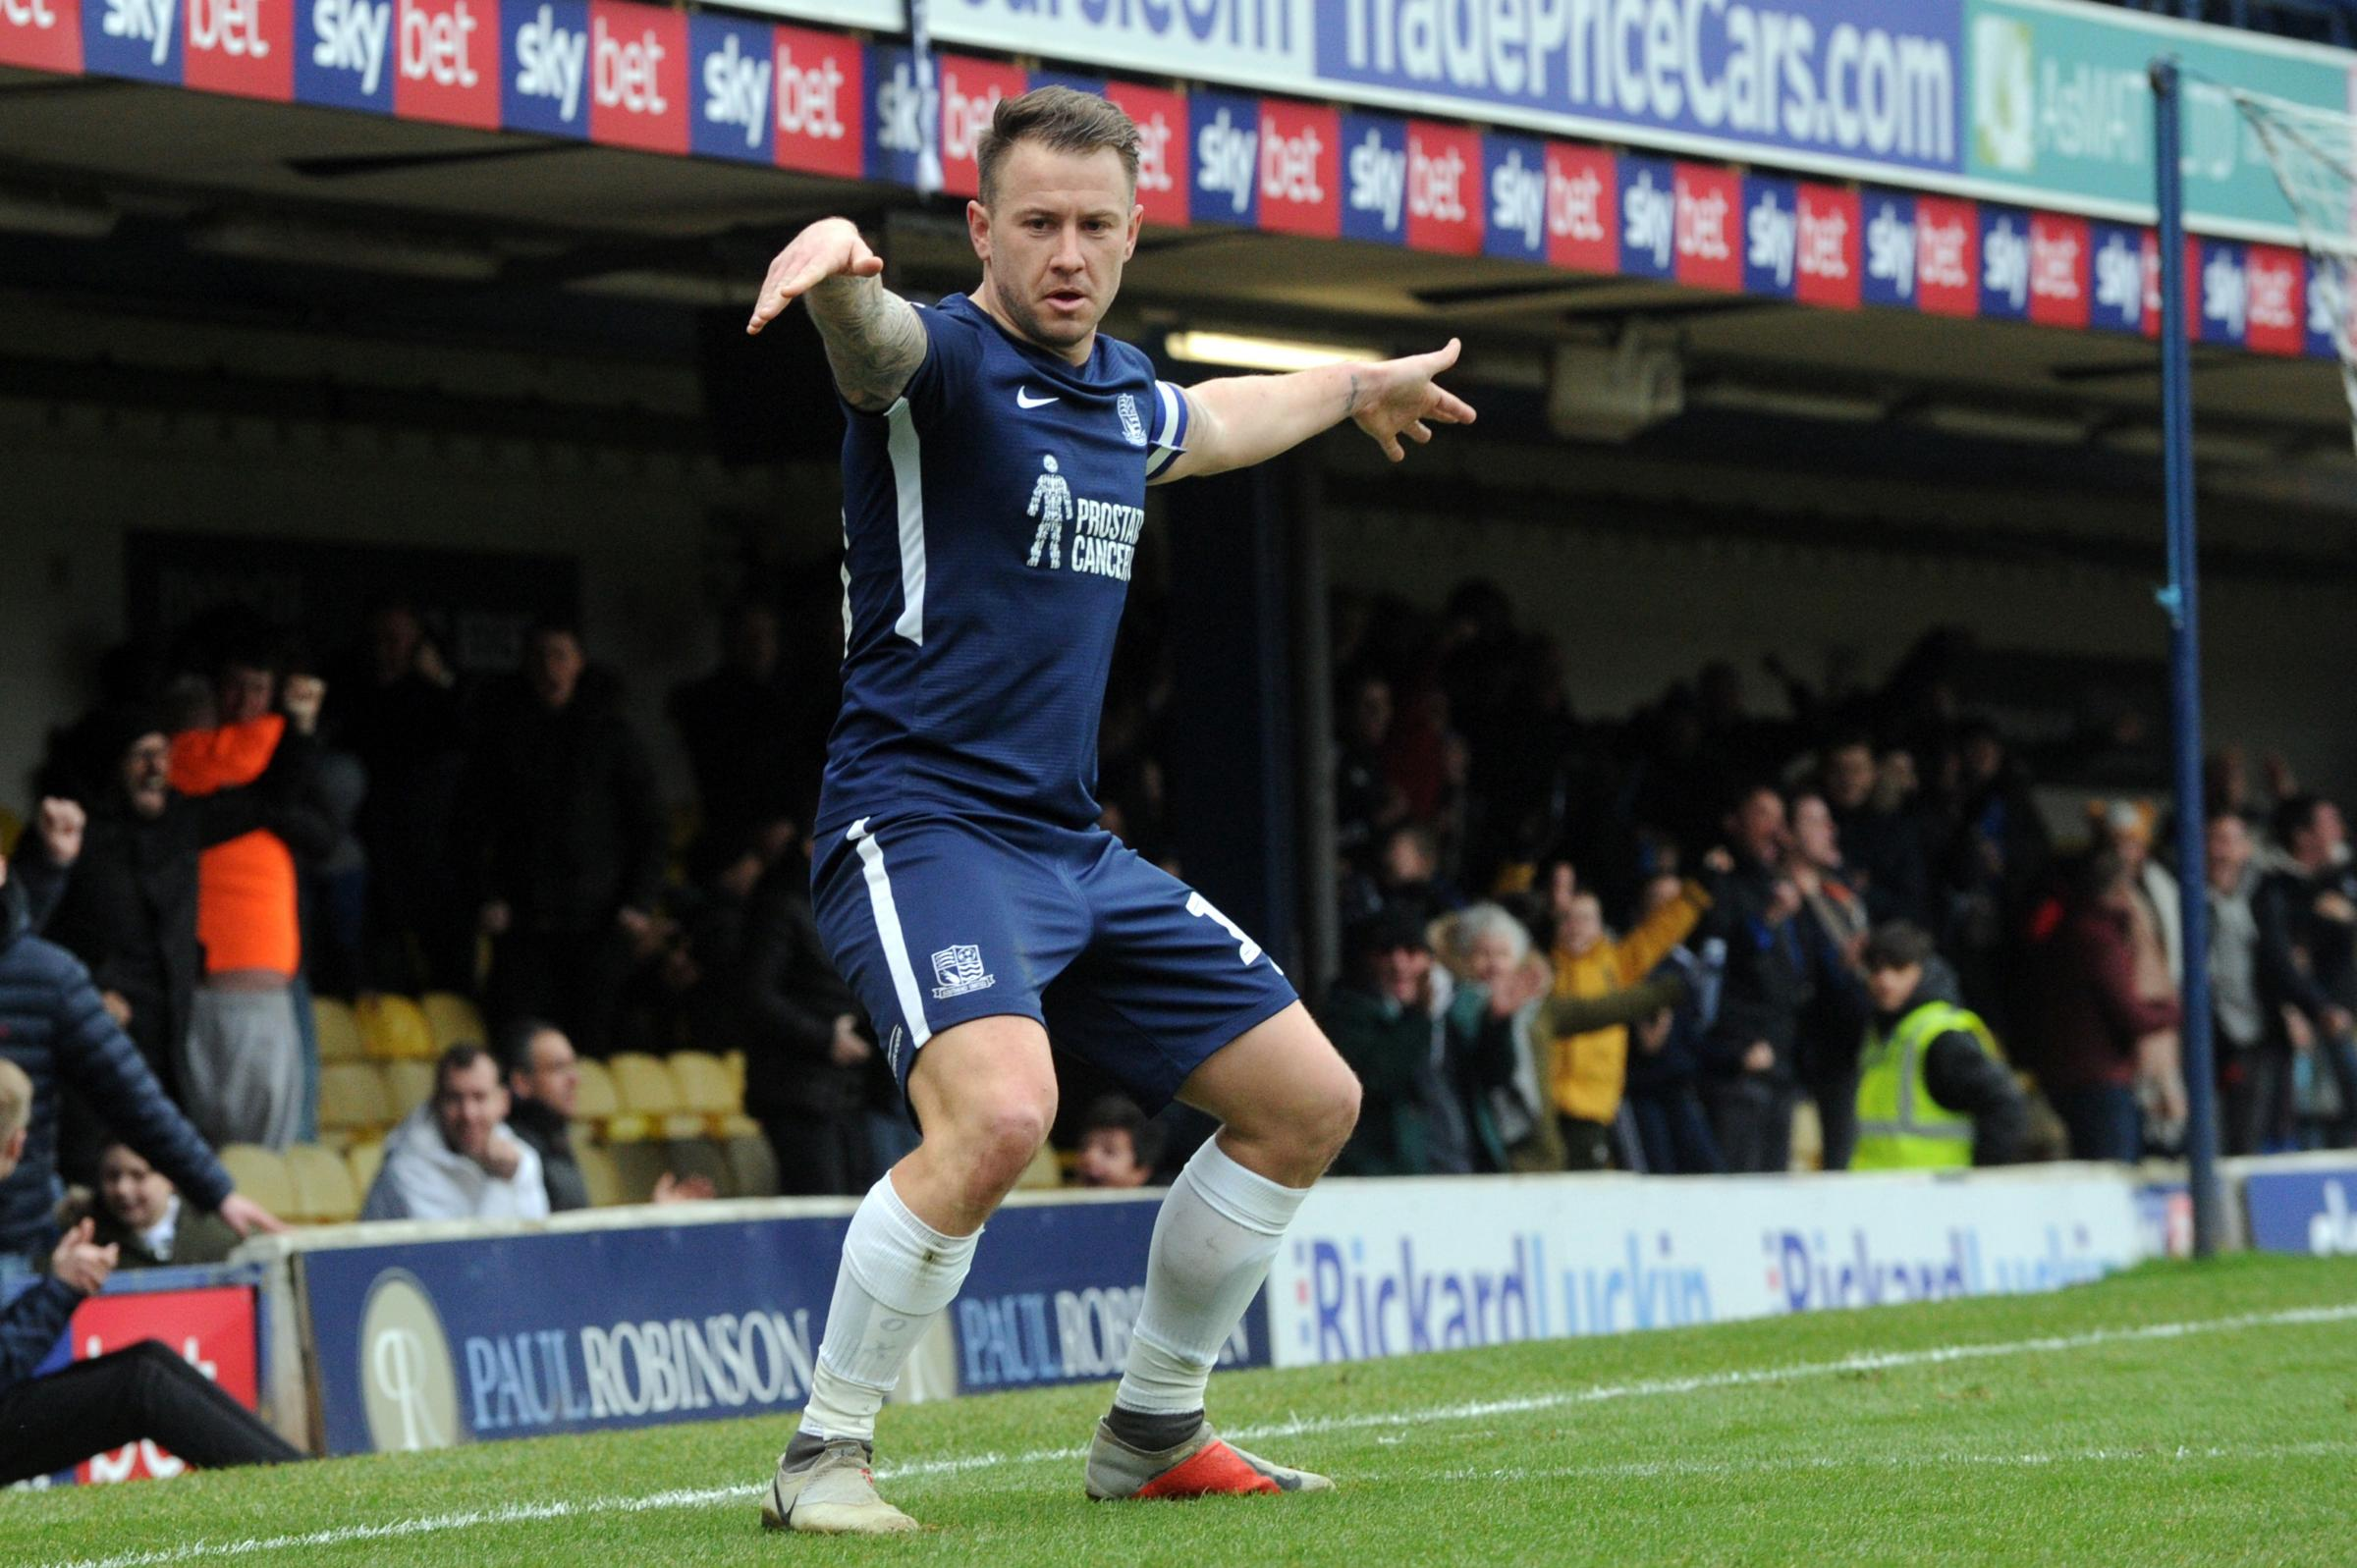 Wanting a win - Southend United striker Simon Cox